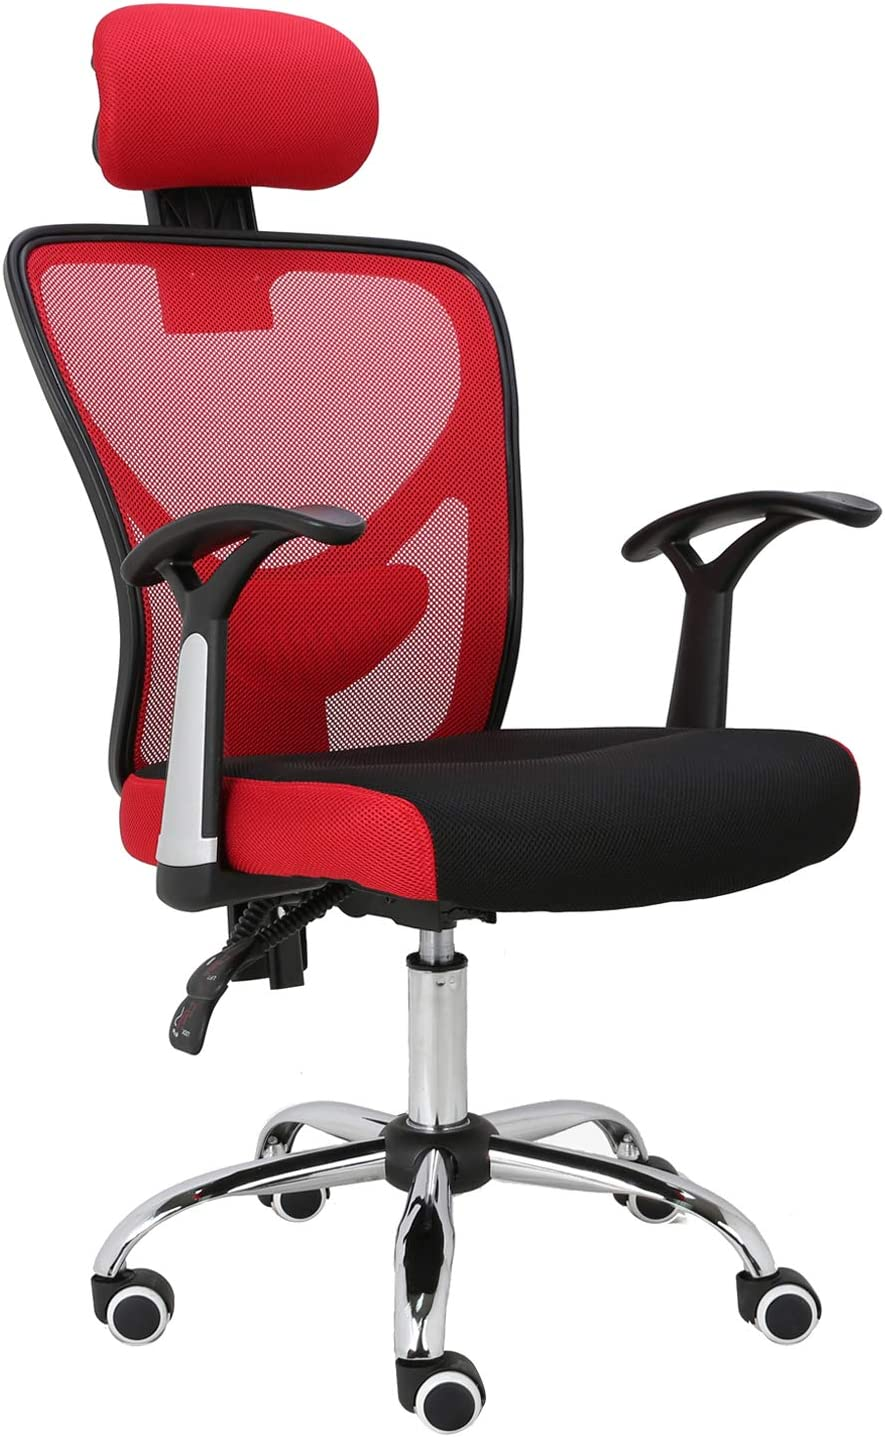 HOMEFUN Ergonomic Mesh Office Chair, Adjustable Computer Desk Chair with Headrest Comfortable Backrest Task Chair Swivel Rolling Chair, Red